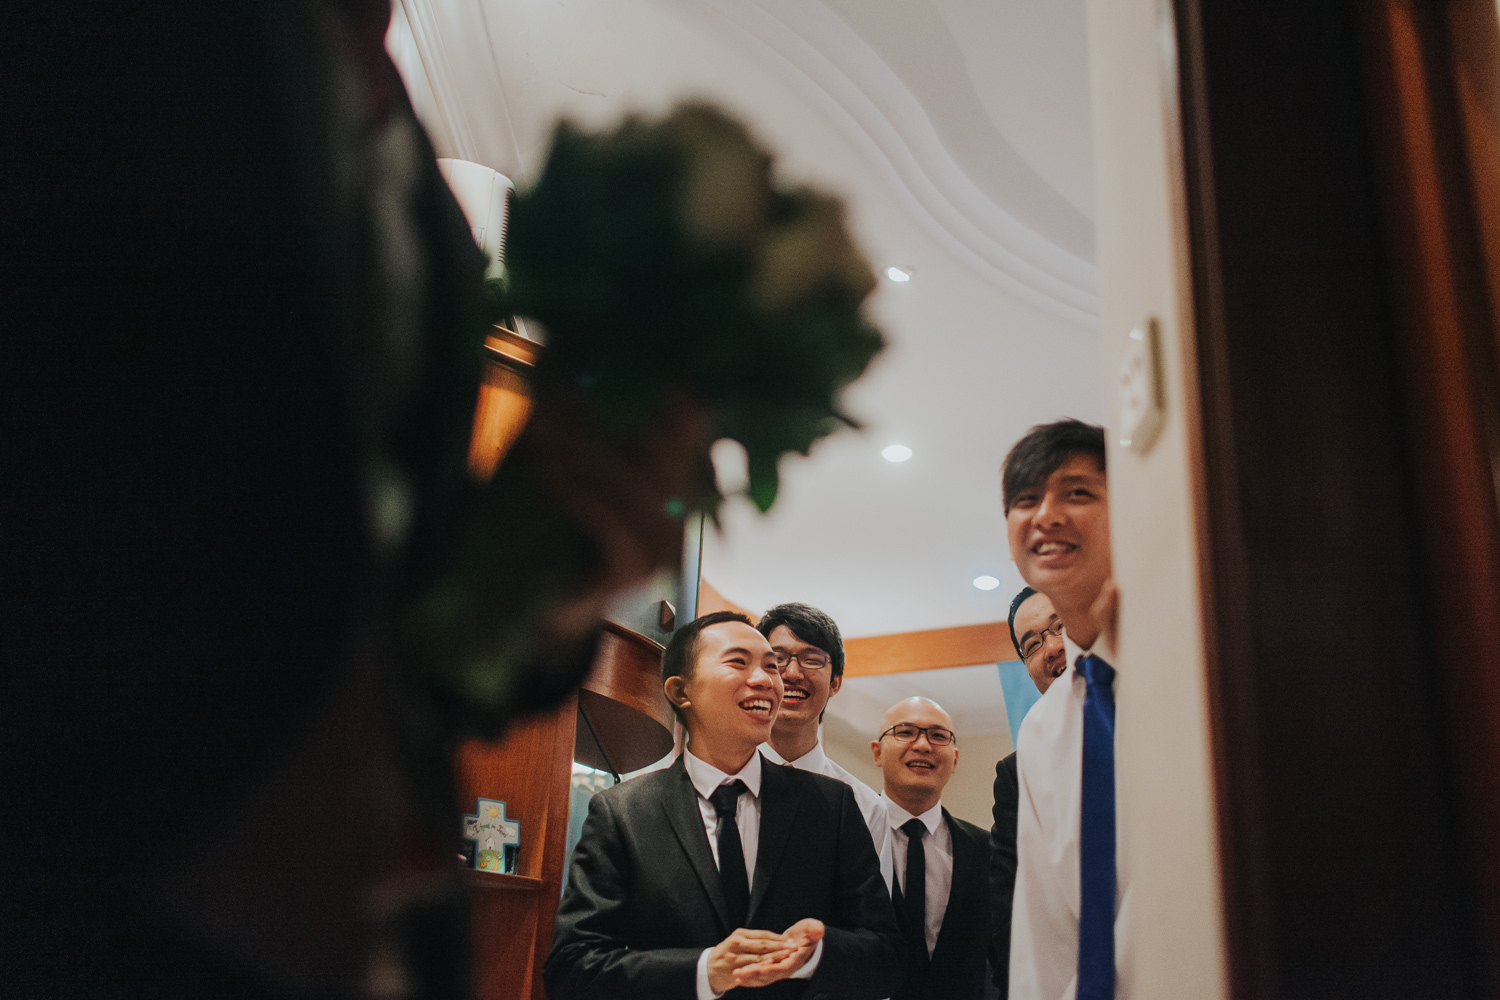 bittersweet photography Singapore wedding photographer jonathan 25